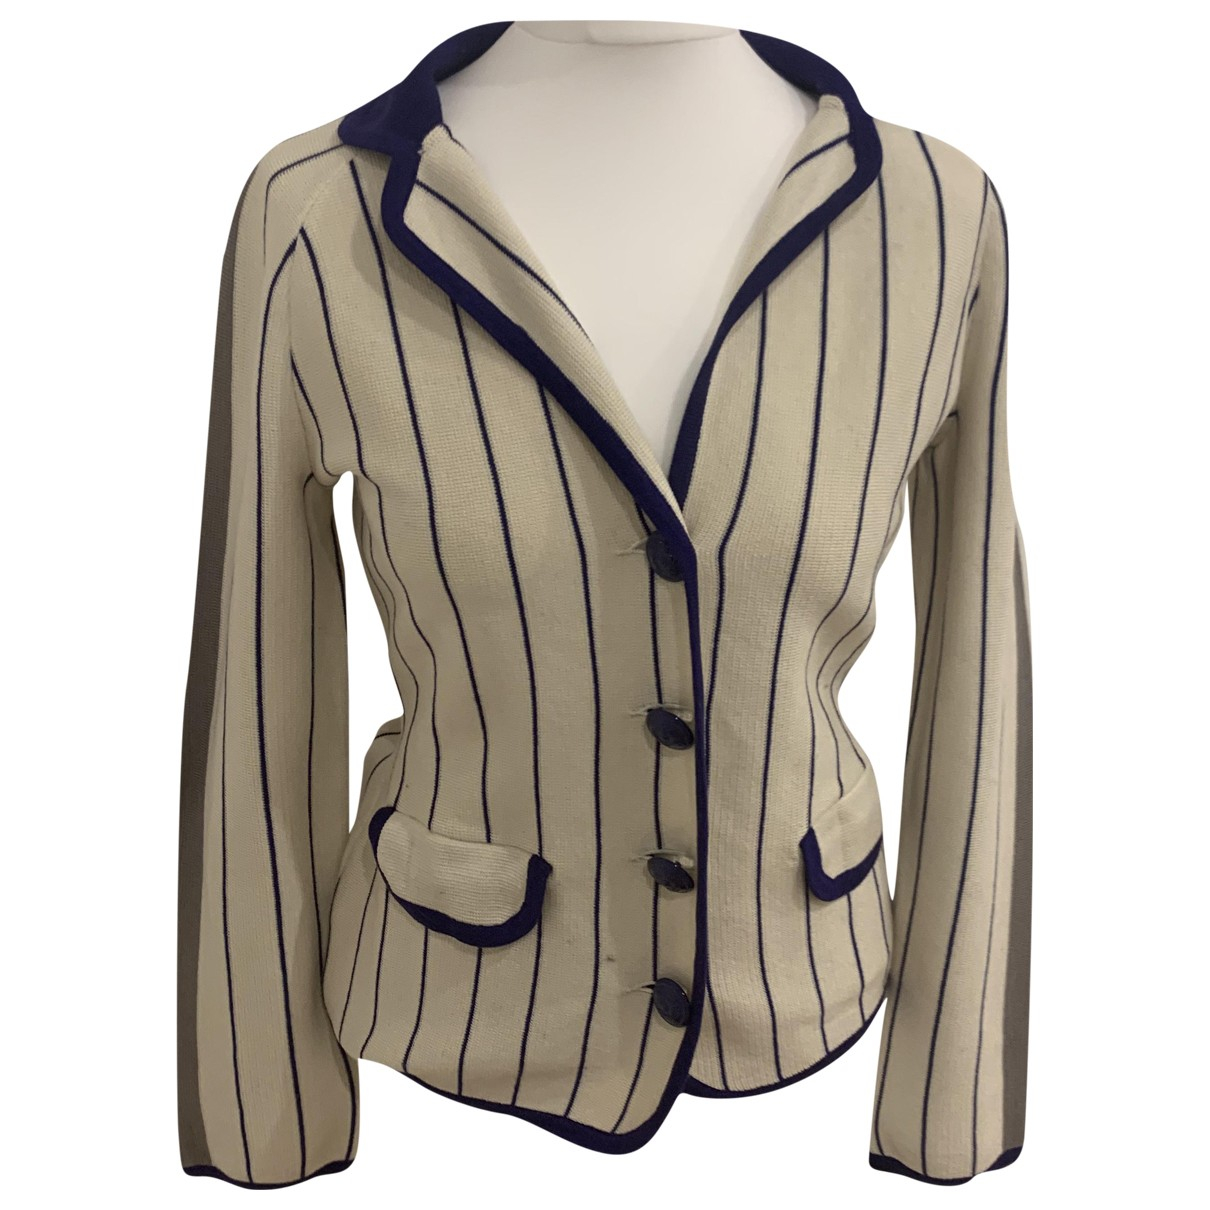 Alberta Ferretti N Multicolour Wool jacket for Women 40 IT